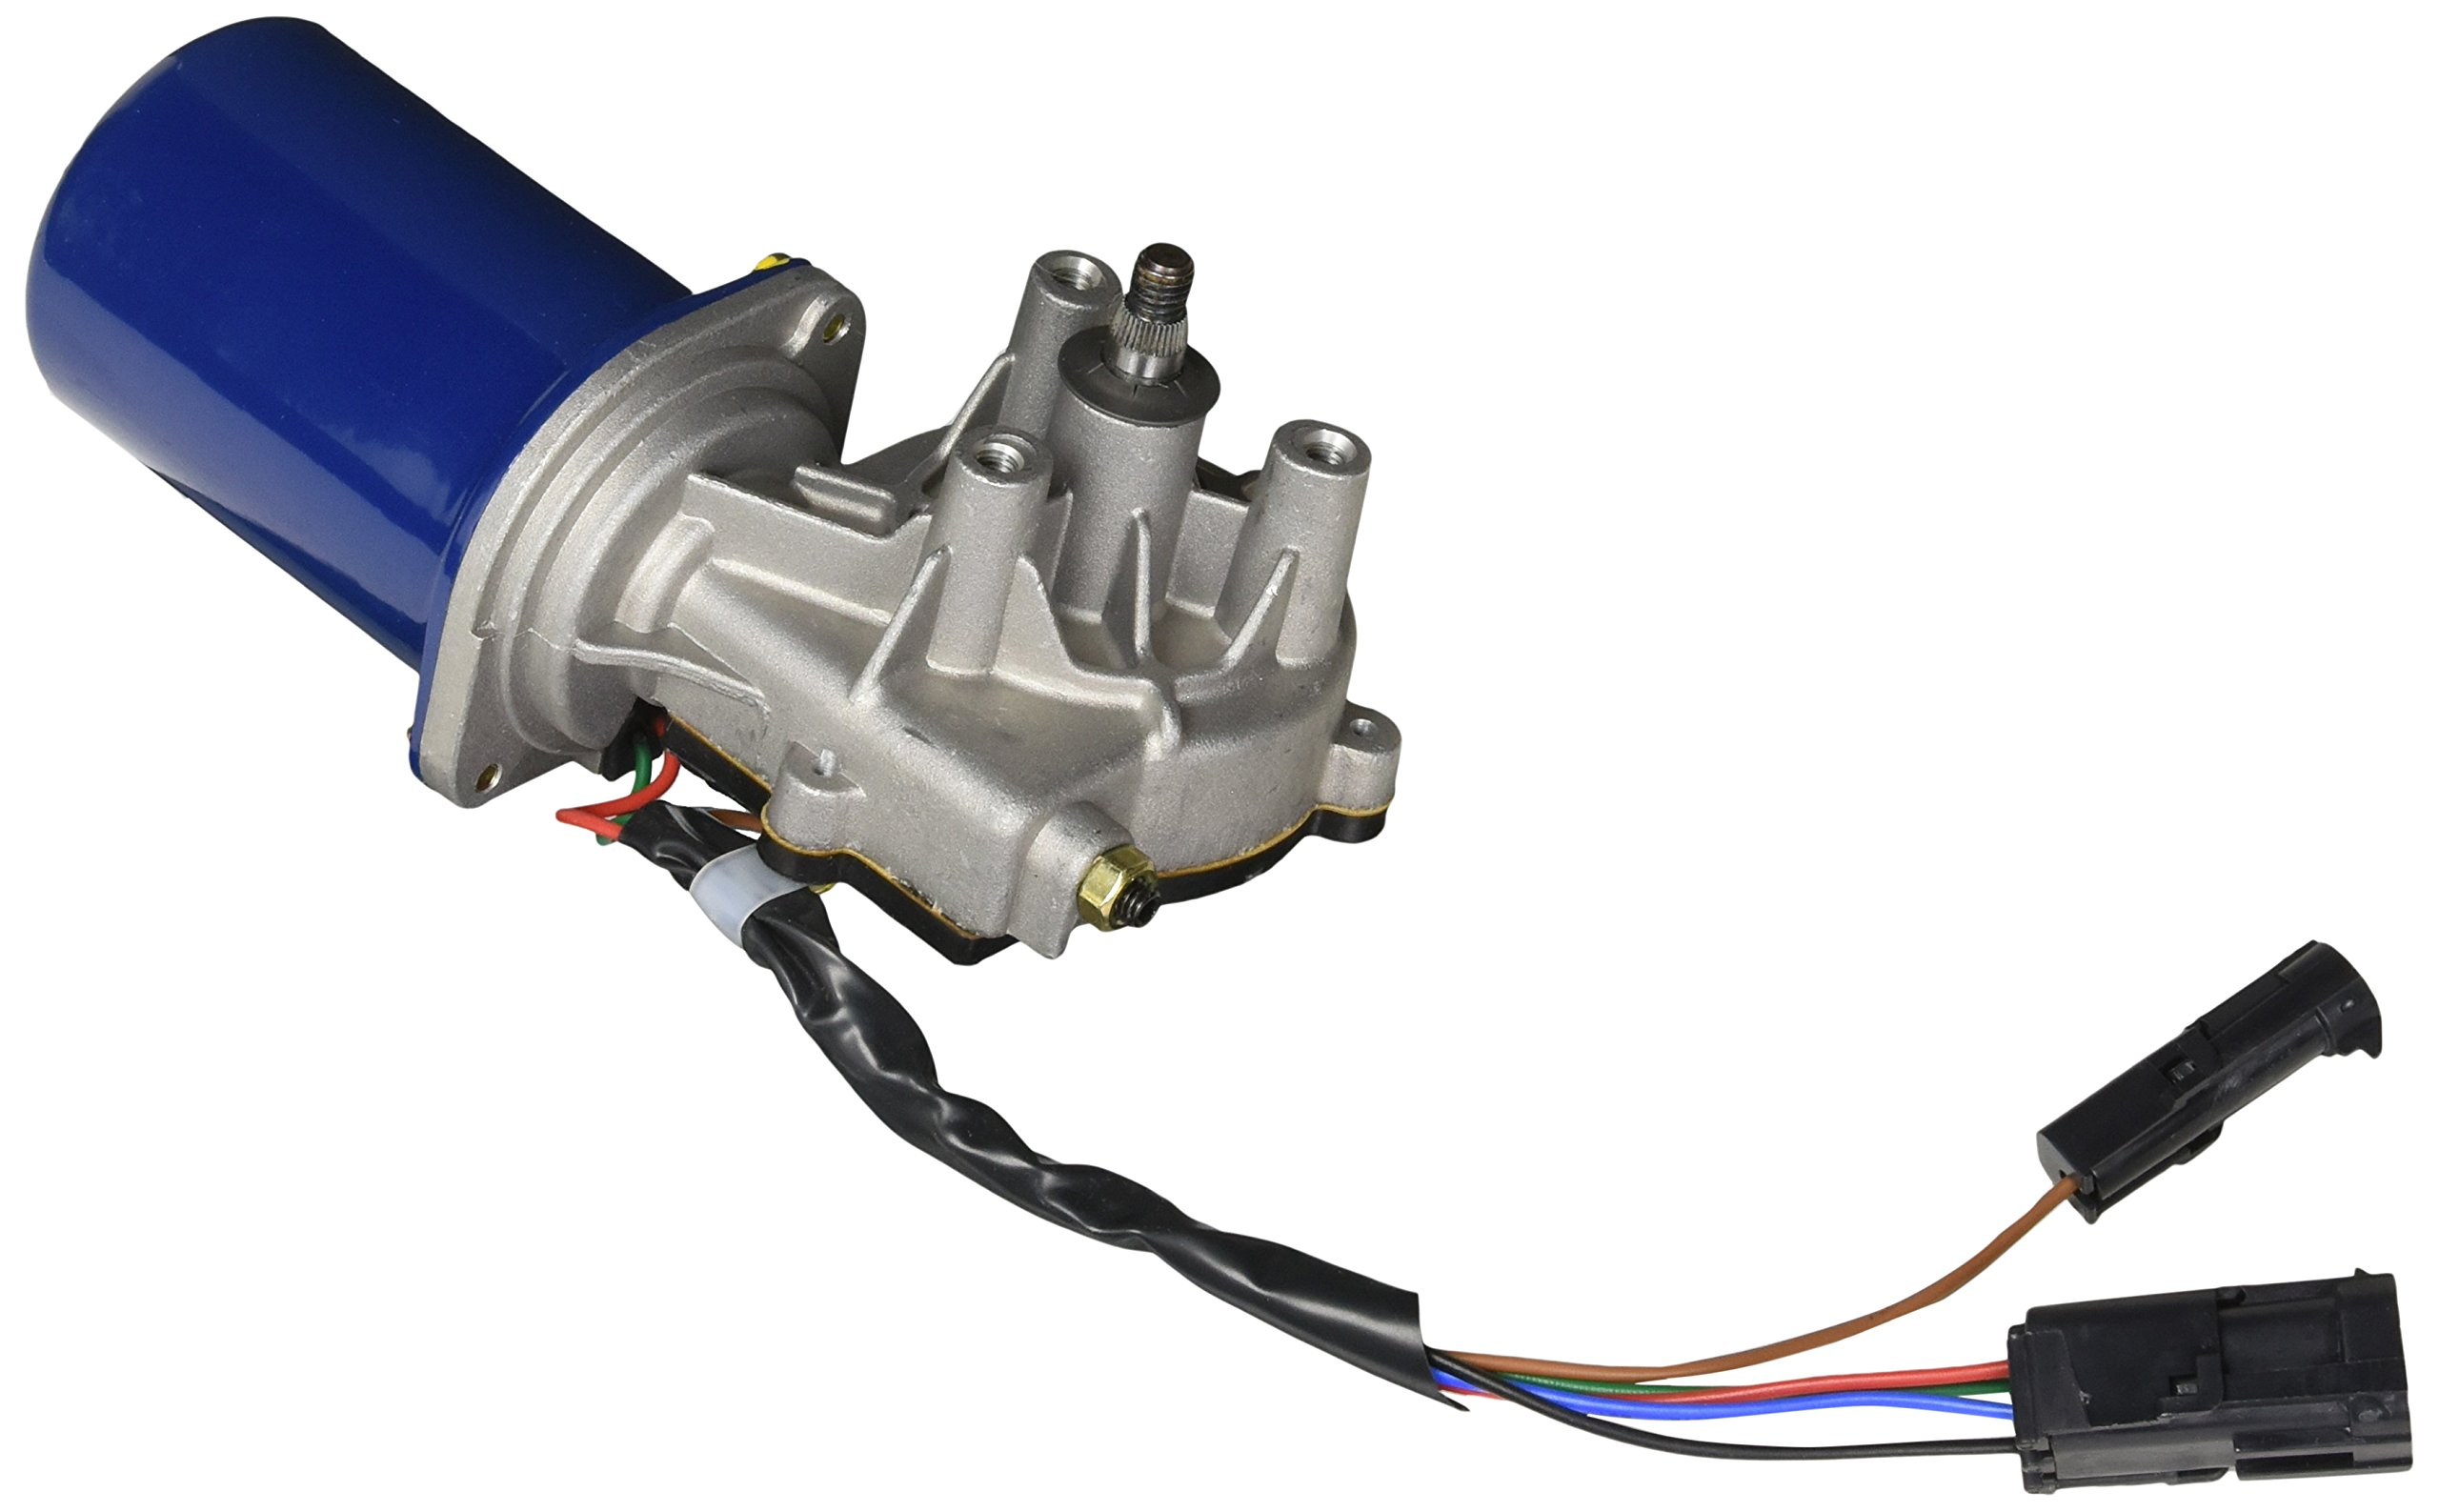 Wexco Wiper Motor AX9208 - Autotex All Makes Motor-Western Star